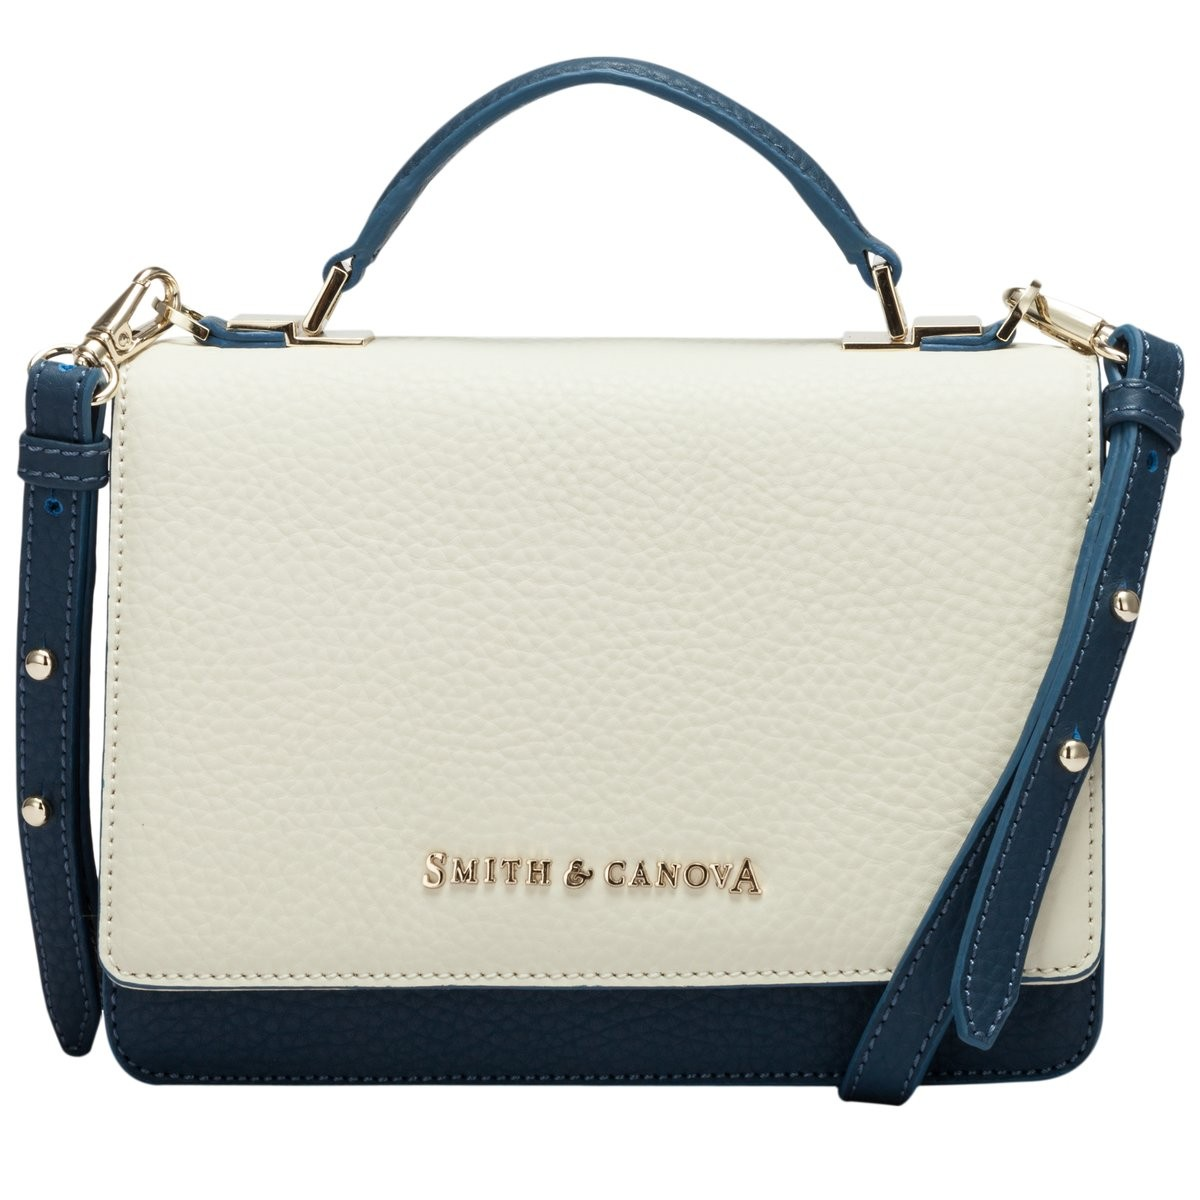 Small Flapover Cross Body Bag - Smith   Canova 313194a053b7c